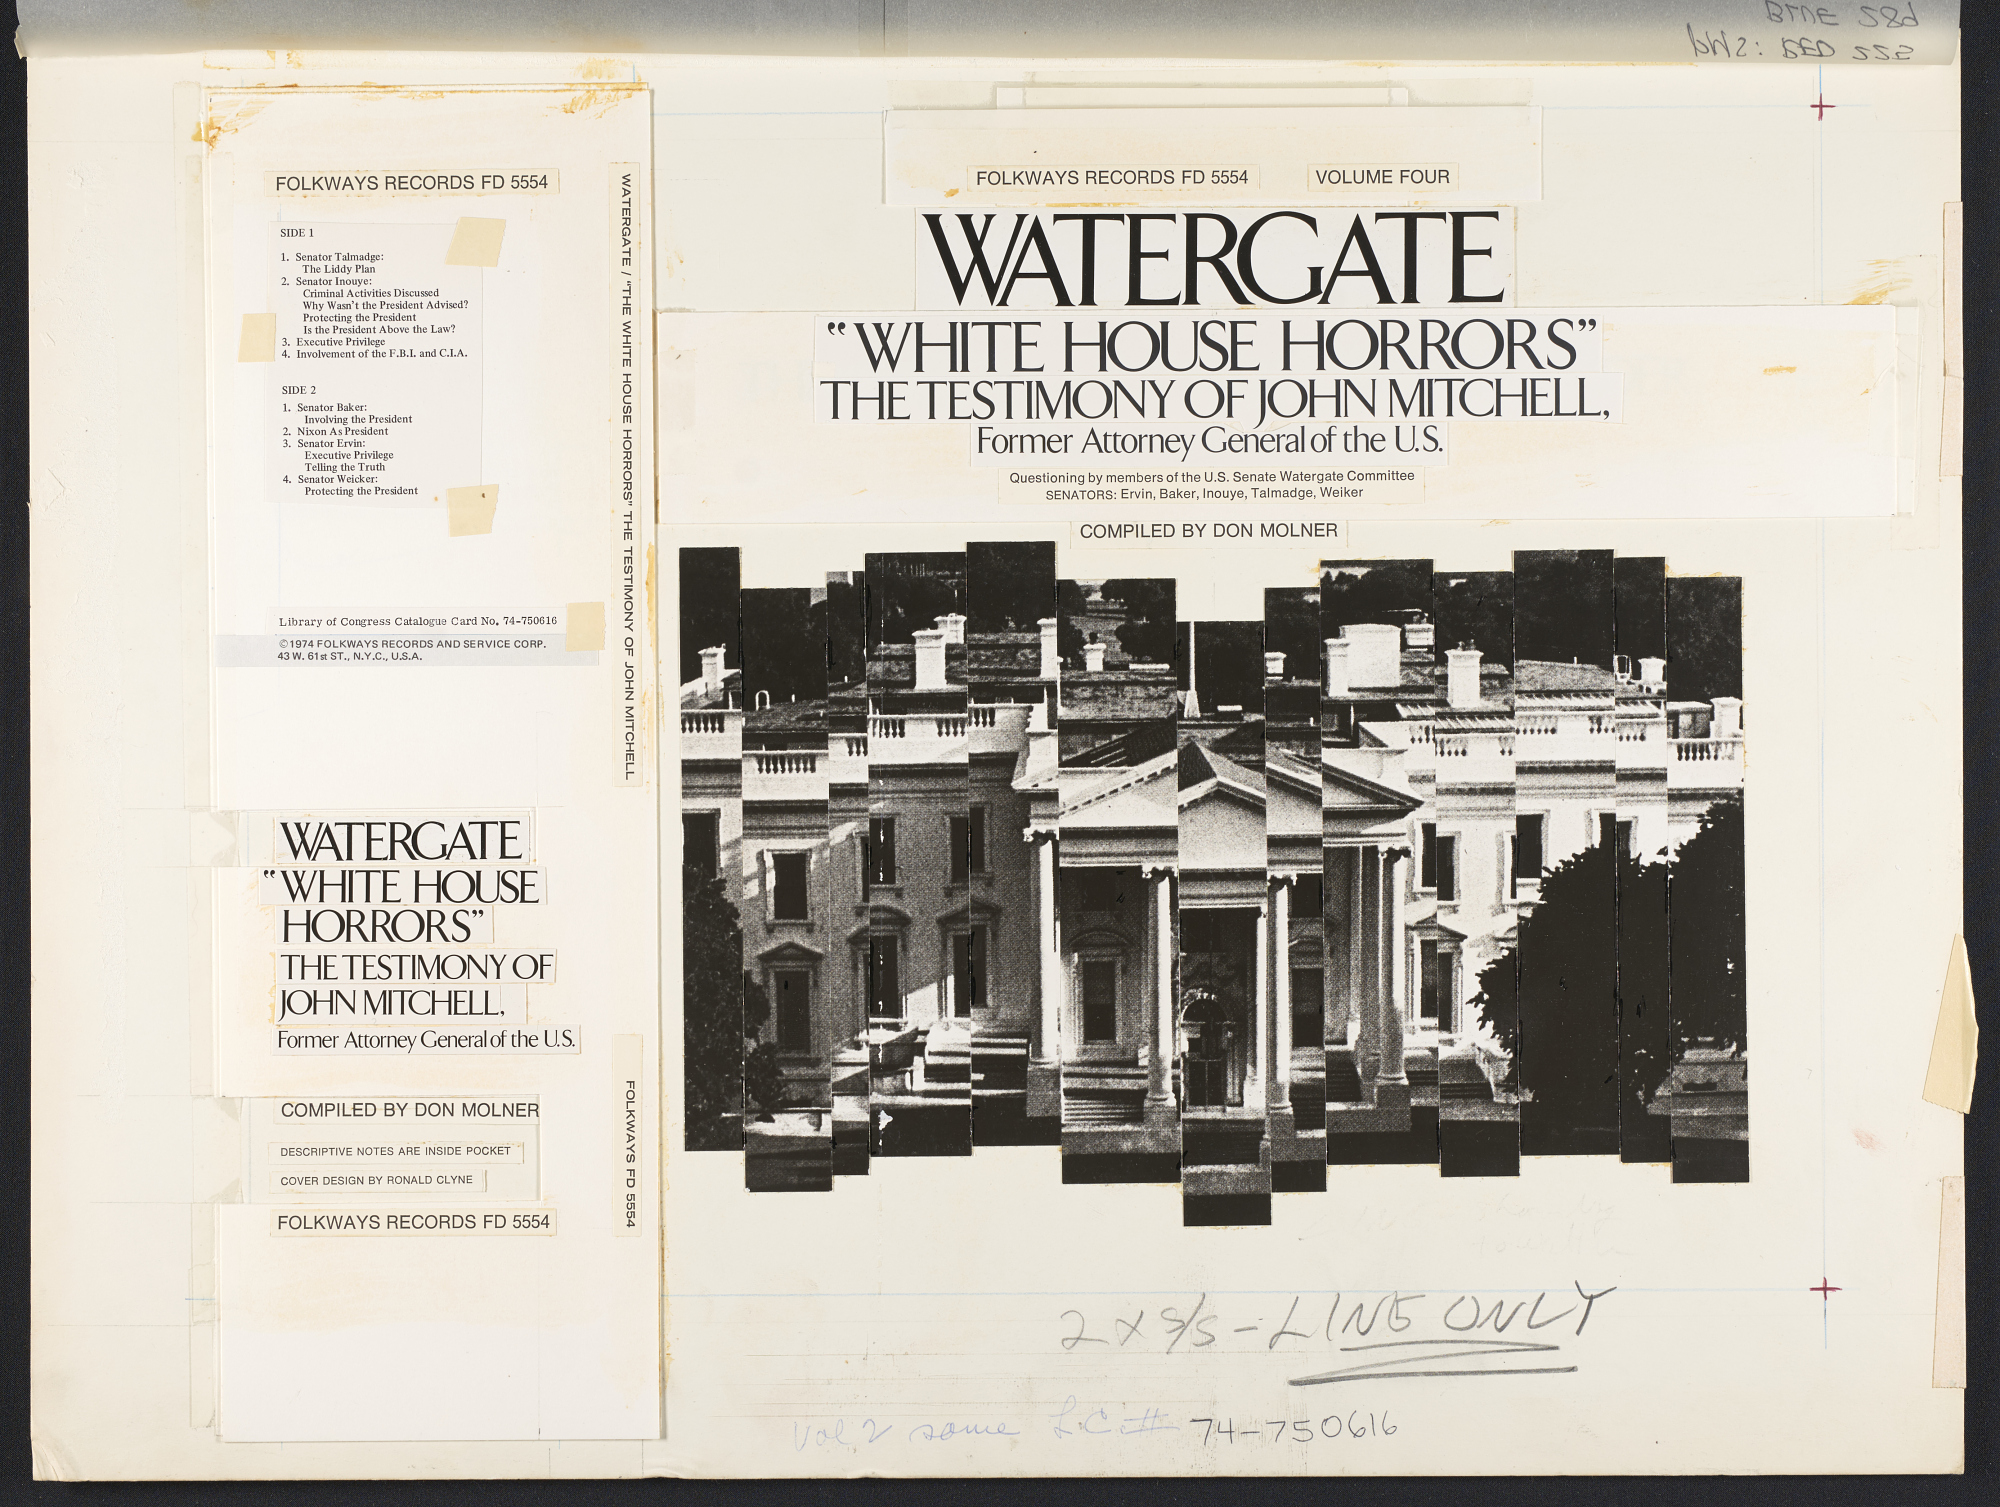 Watergate. Vol.4 [sound recording] : White House horrors: testimony of John Mitchell, former Attorney General of the U.S. / compiled by Den Molner